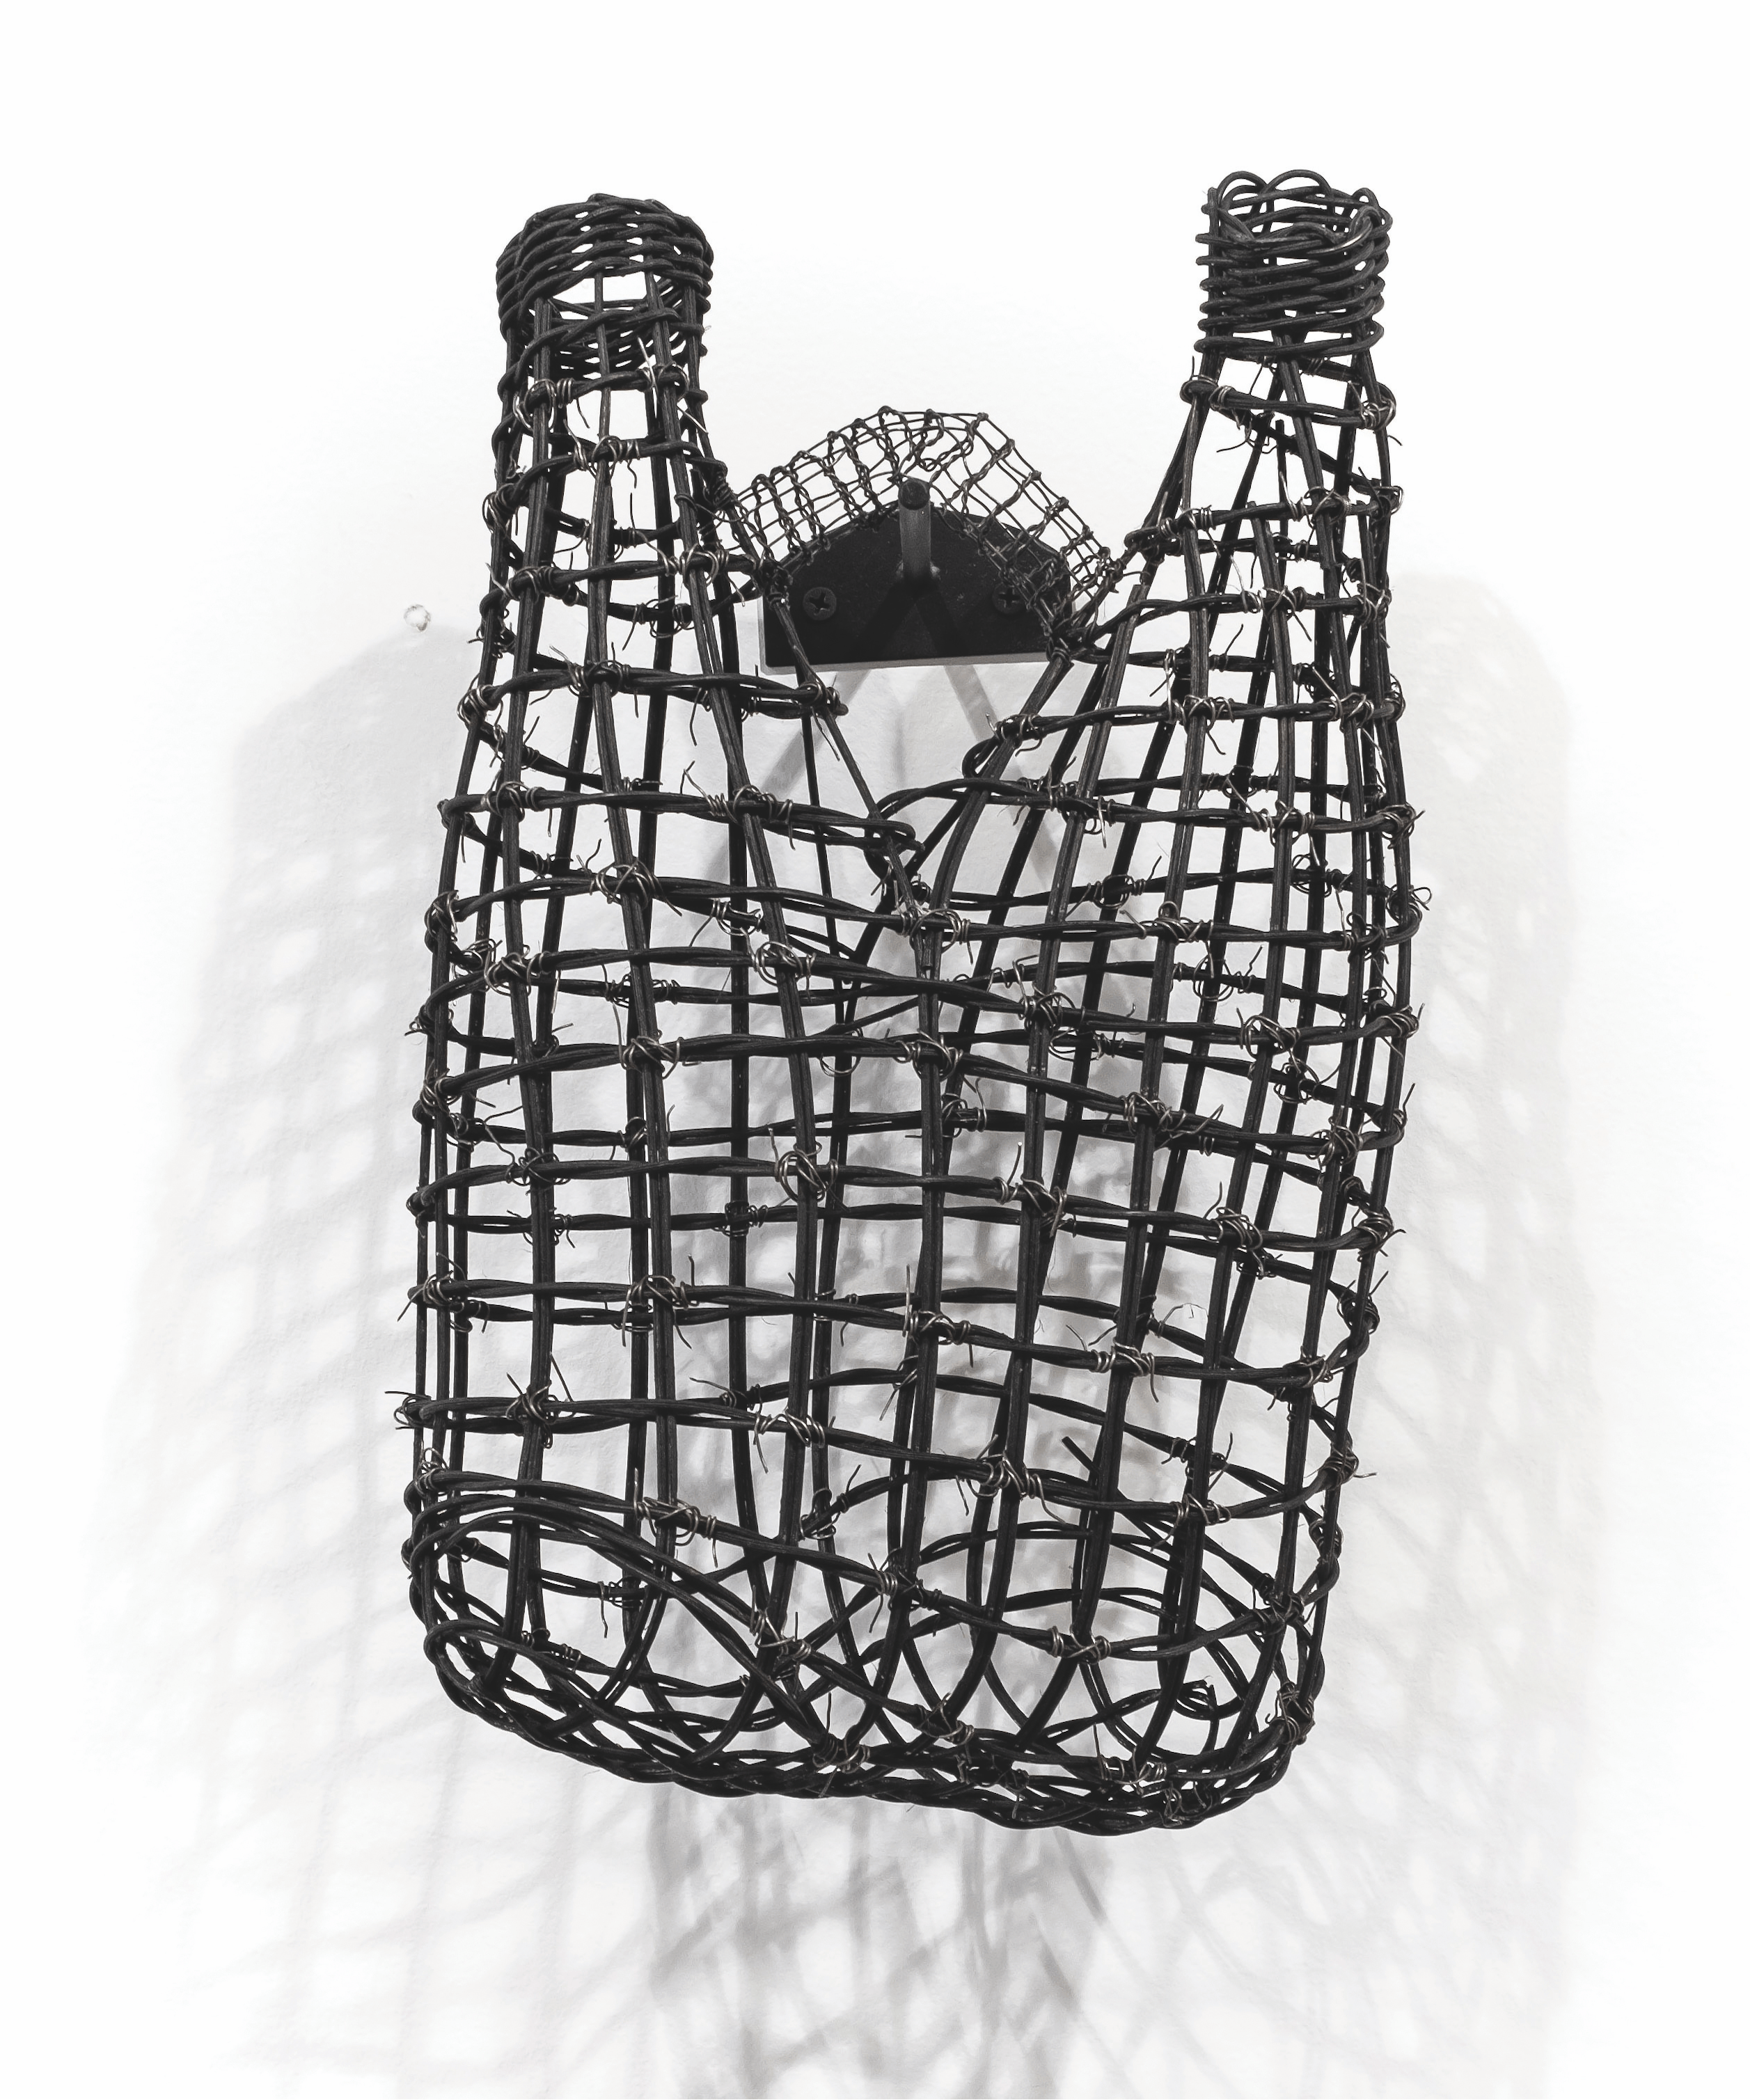 Woven sculpture of two fused bottles connected by a small bridge